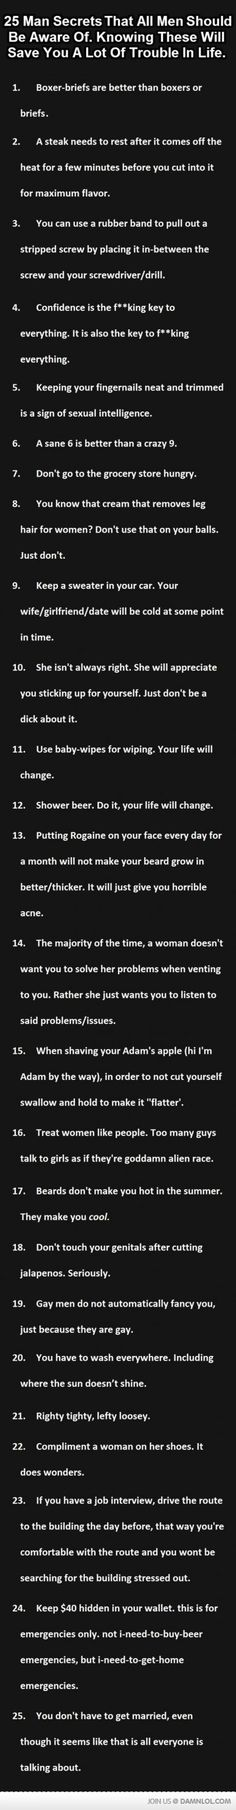 25 Man Facts You Should Know